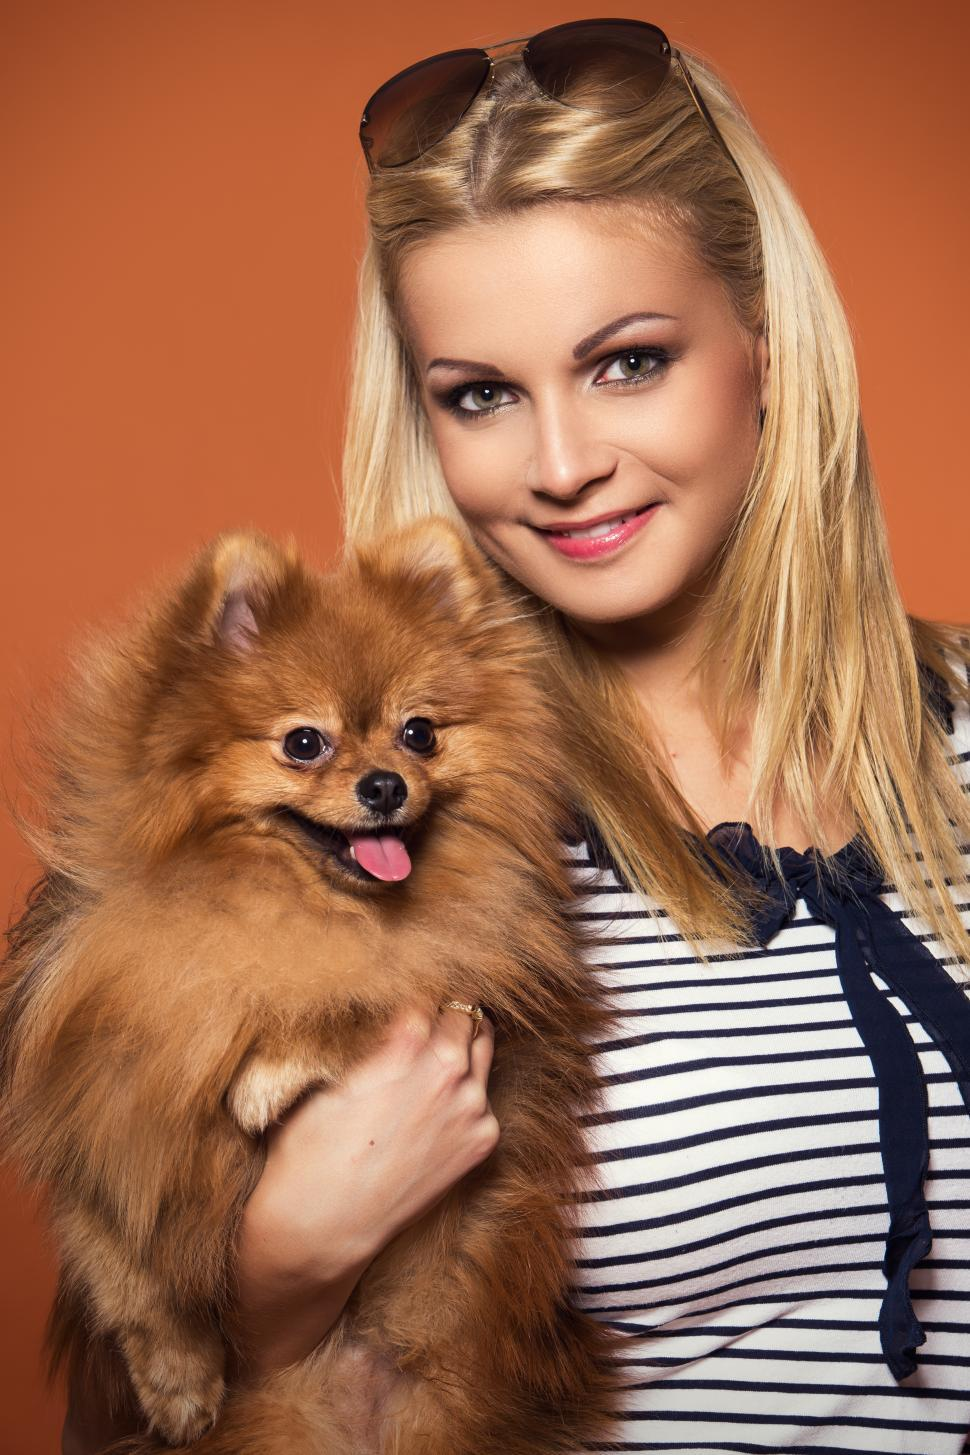 Download Free Stock HD Photo of Summer. Beautiful blonde with dog looking at camera Online